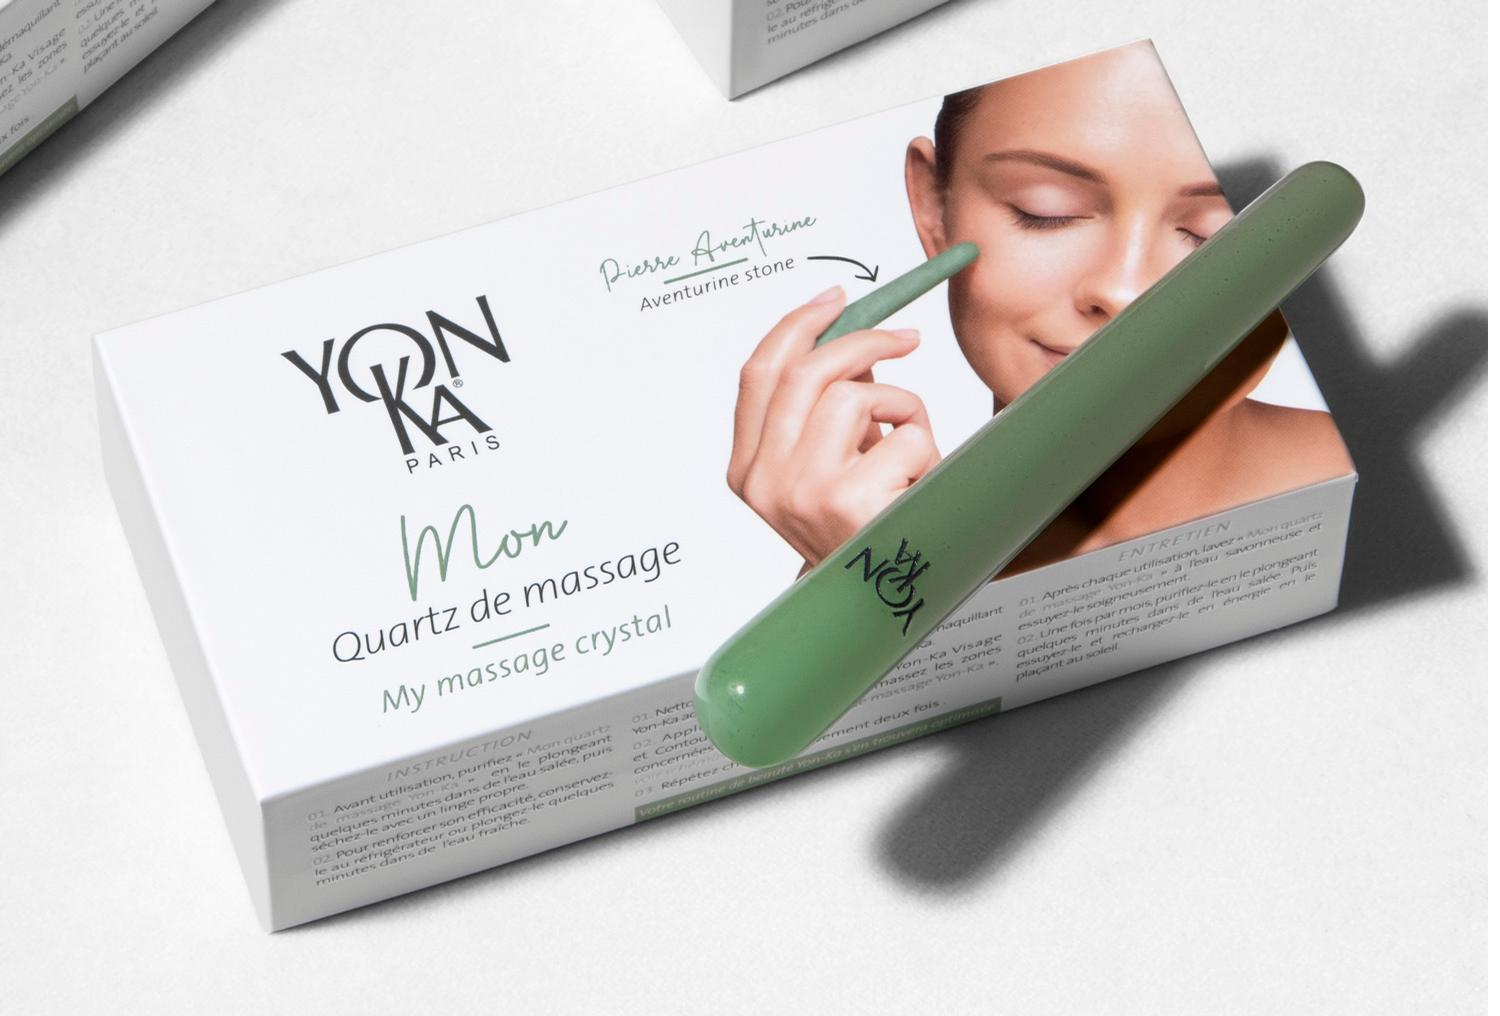 The new tool can be used to sculpt facial contours and apply serums and creams